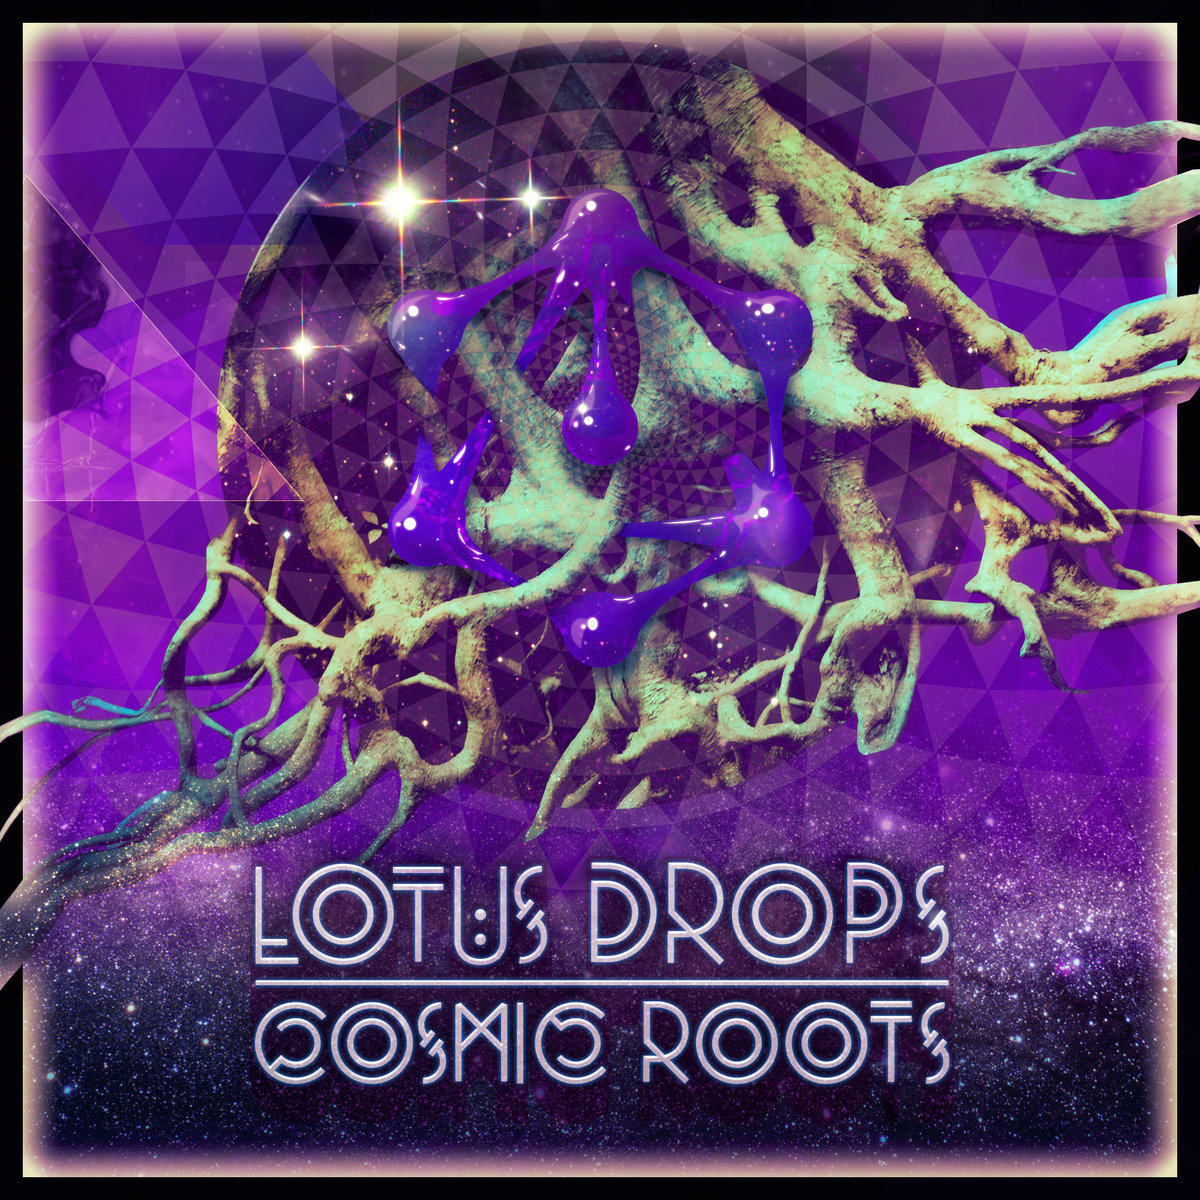 Lotus Drops - Cosmic Roots (artwork)